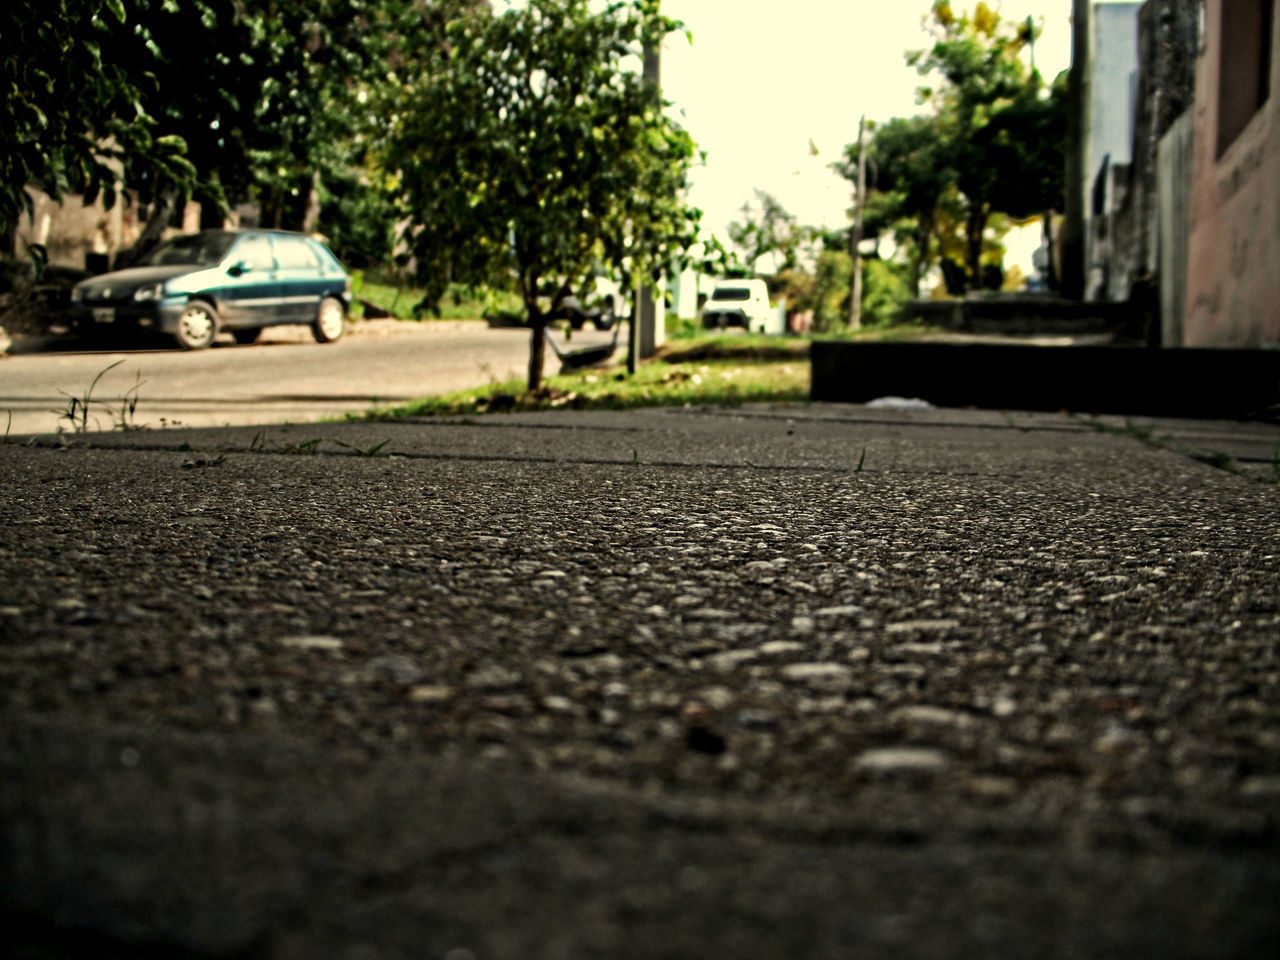 #home #sweet #home #street Asphalt City City Life Day Outdoors Selective Focus Street The Way Forward Tree First Eyeem Photo